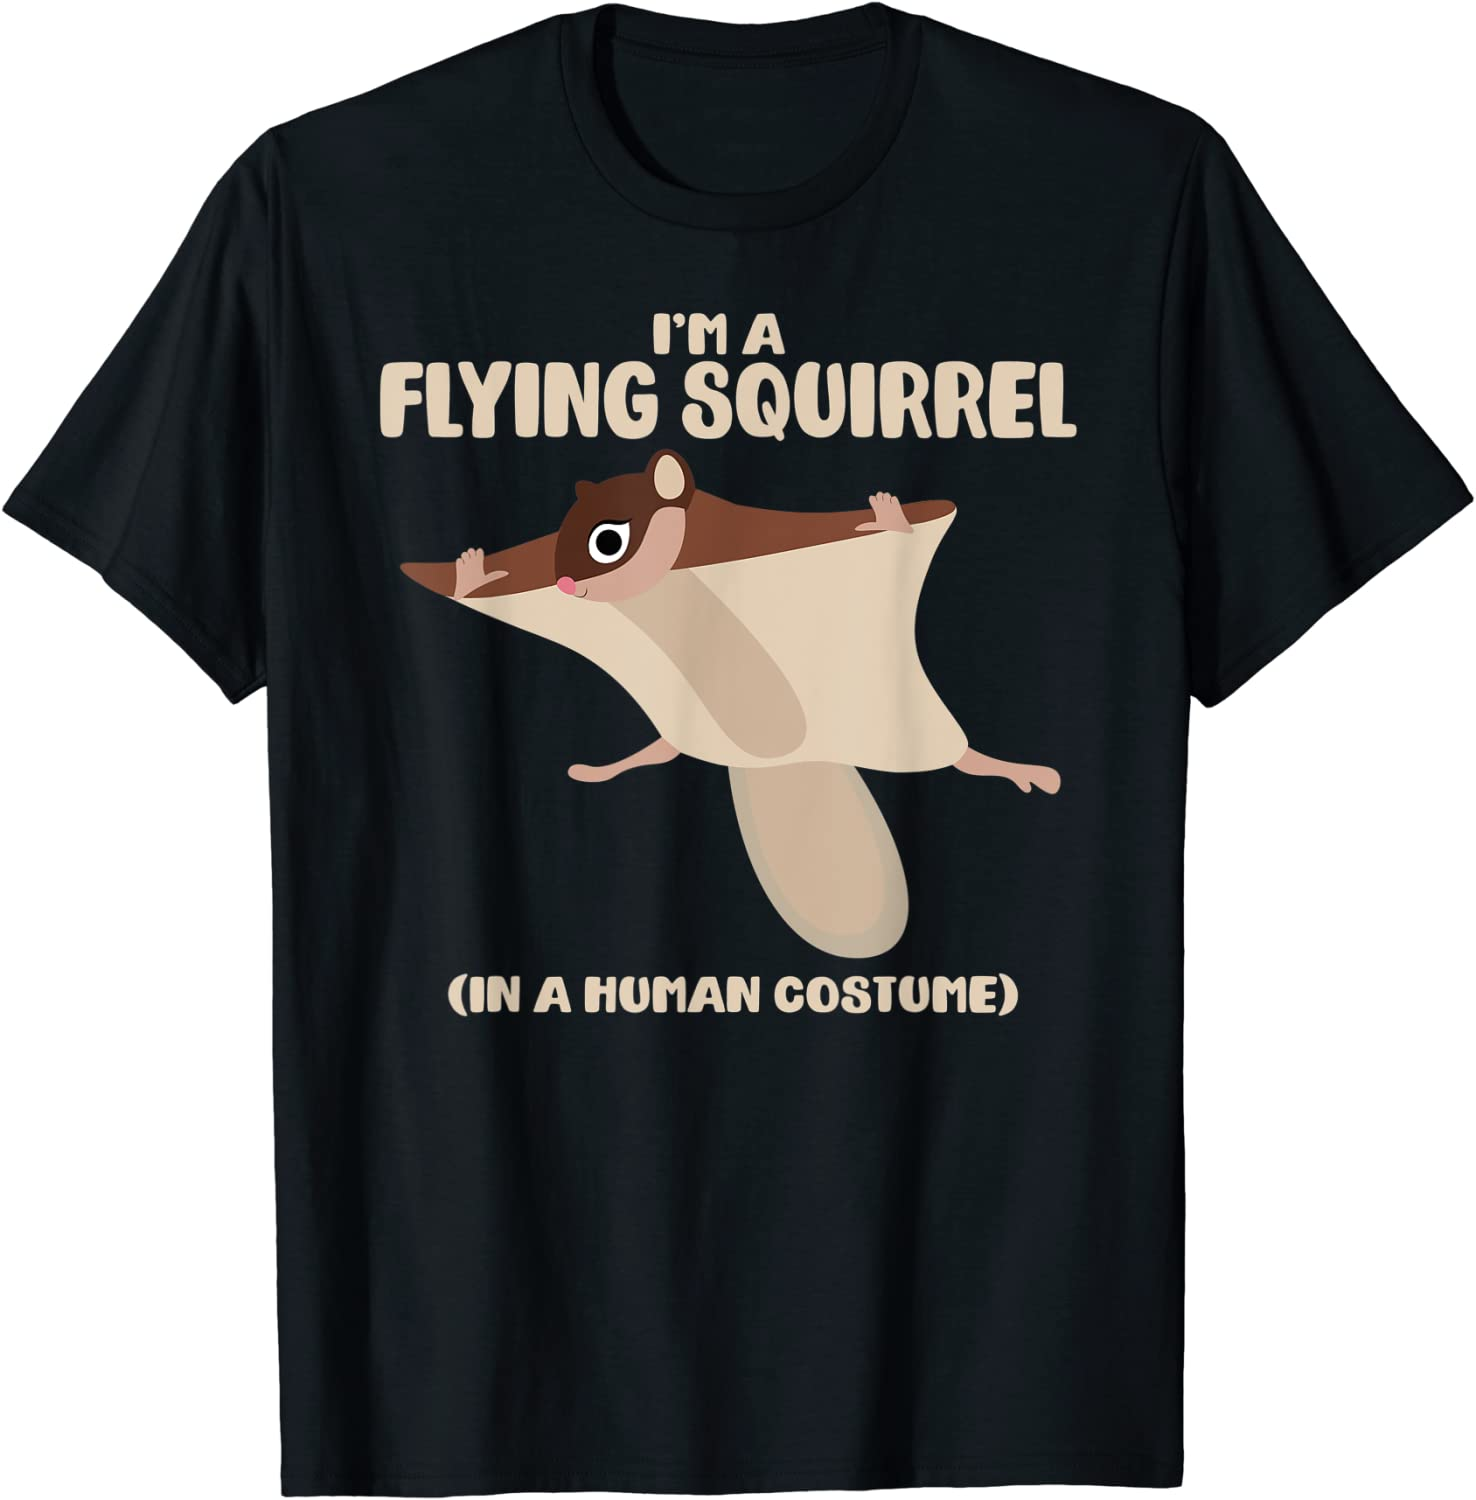 Amazon Com Flying Squirrel Costume Funny Squirrels Halloween Graphic T Shirt Clothing